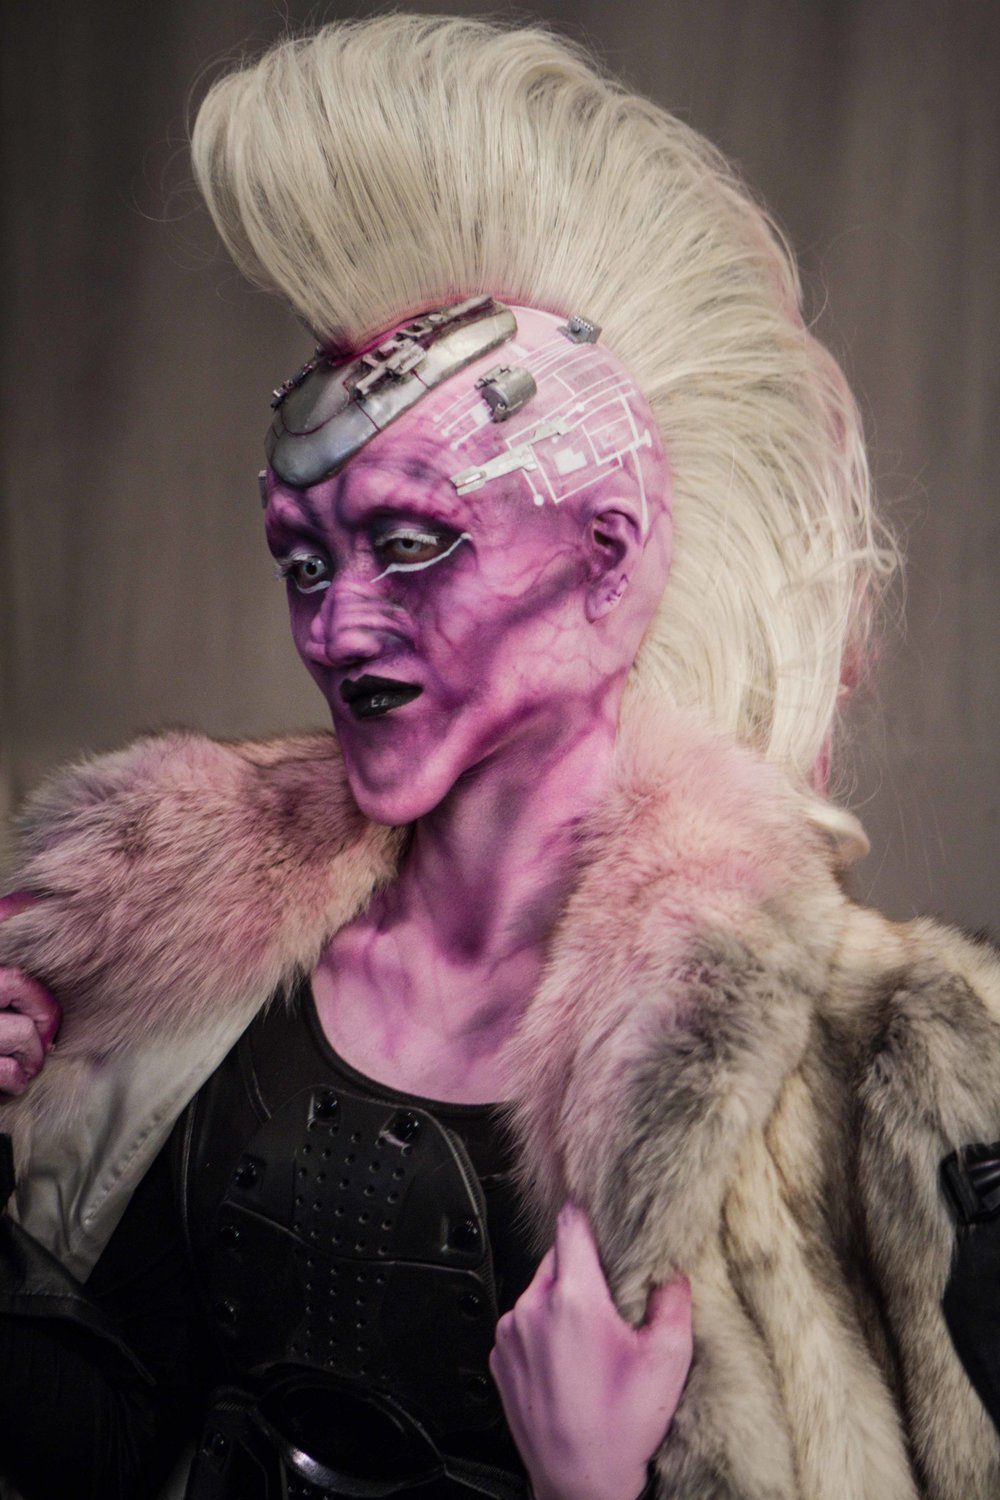 IMATS 2017 - Battle of the Brushes Special Effects Makeup (www.KyleReaArt.com - www.KyleReaPhotography.com) 8.jpg